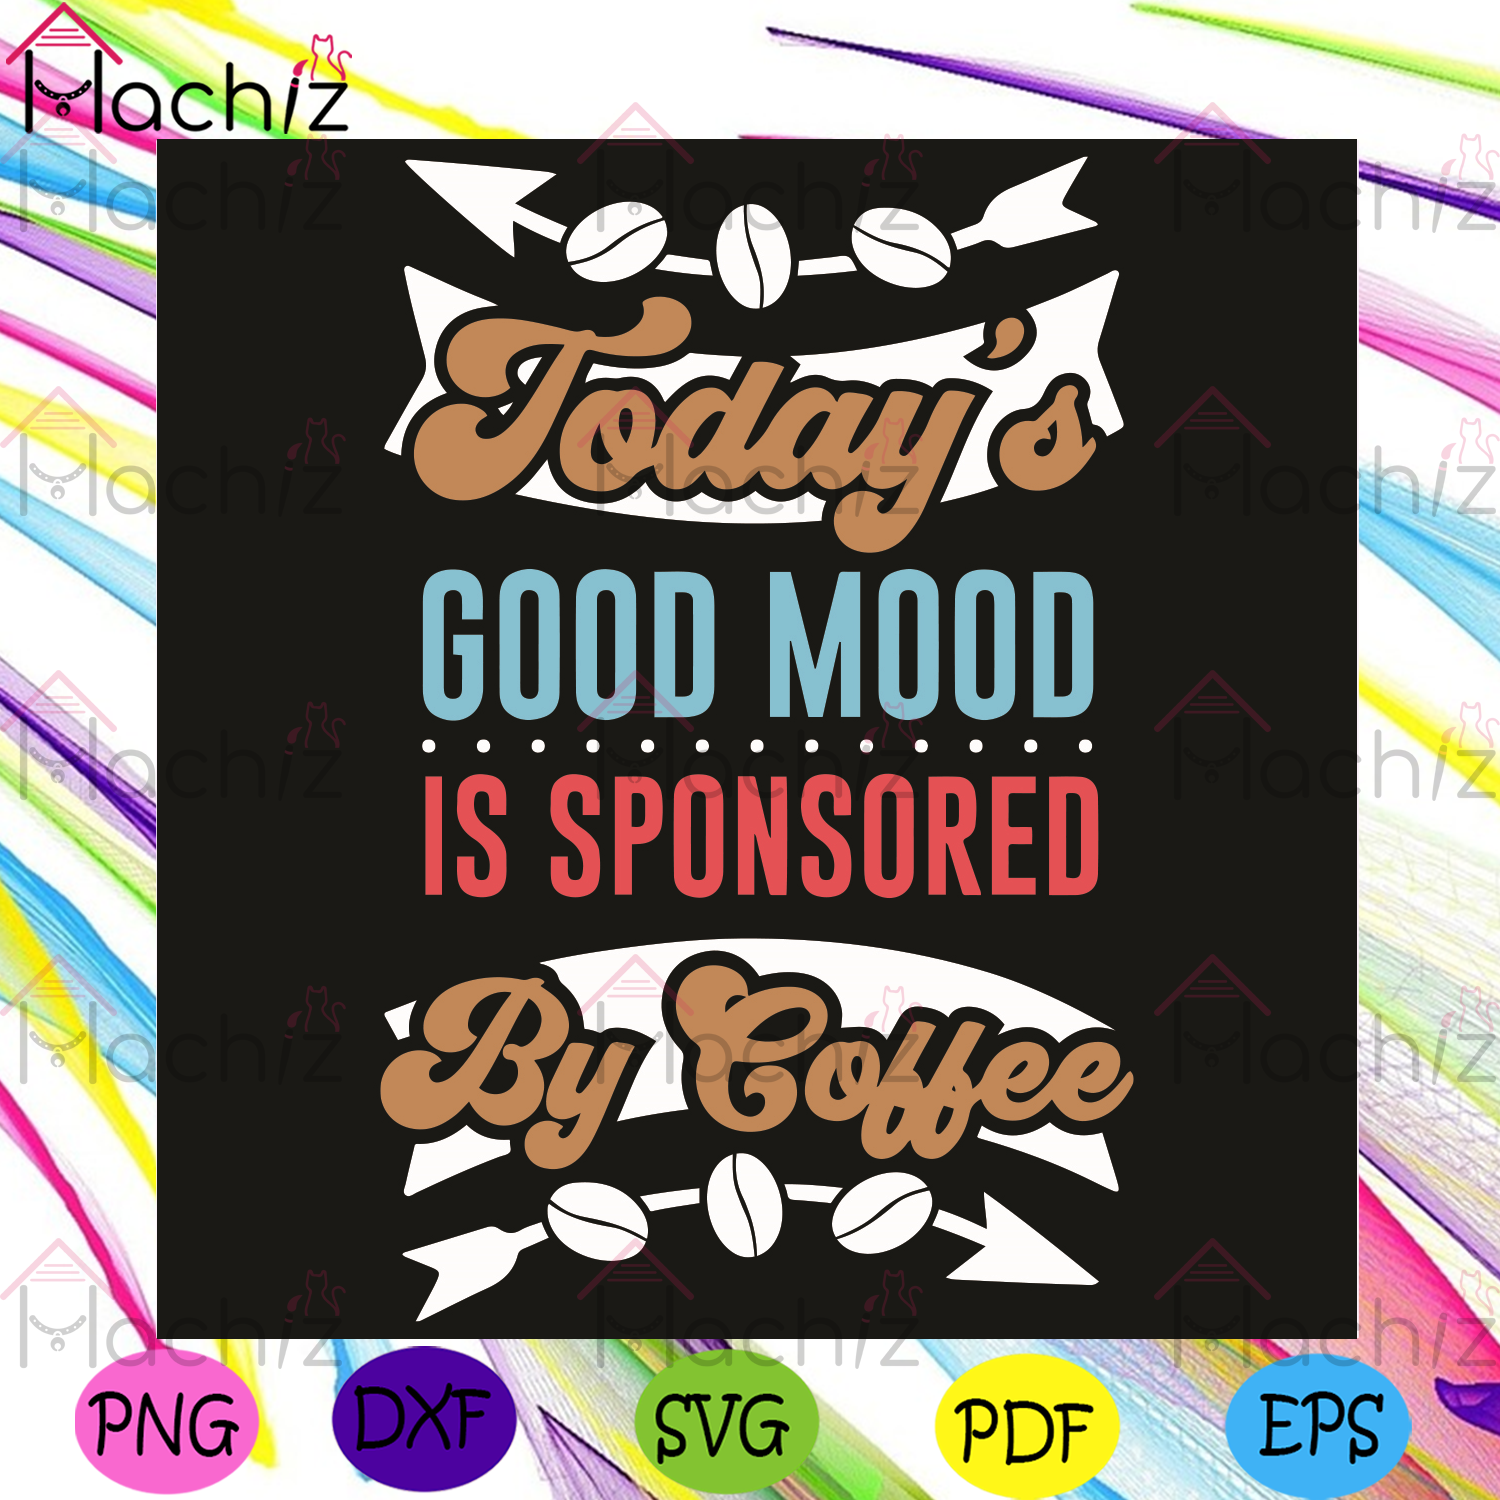 Todays Good Mood Is Sponsored Svg, Trending Svg, Coffee Svg, Coffee Beans Svg, Arrow Svg, Good Mood Svg, Coffee Quotes Svg, Coffee Cups Svg, Coffee Drink Svg, Power Svg, Coffee Lovers Svg, Family Gifts Svg, Friends Gifts Svg